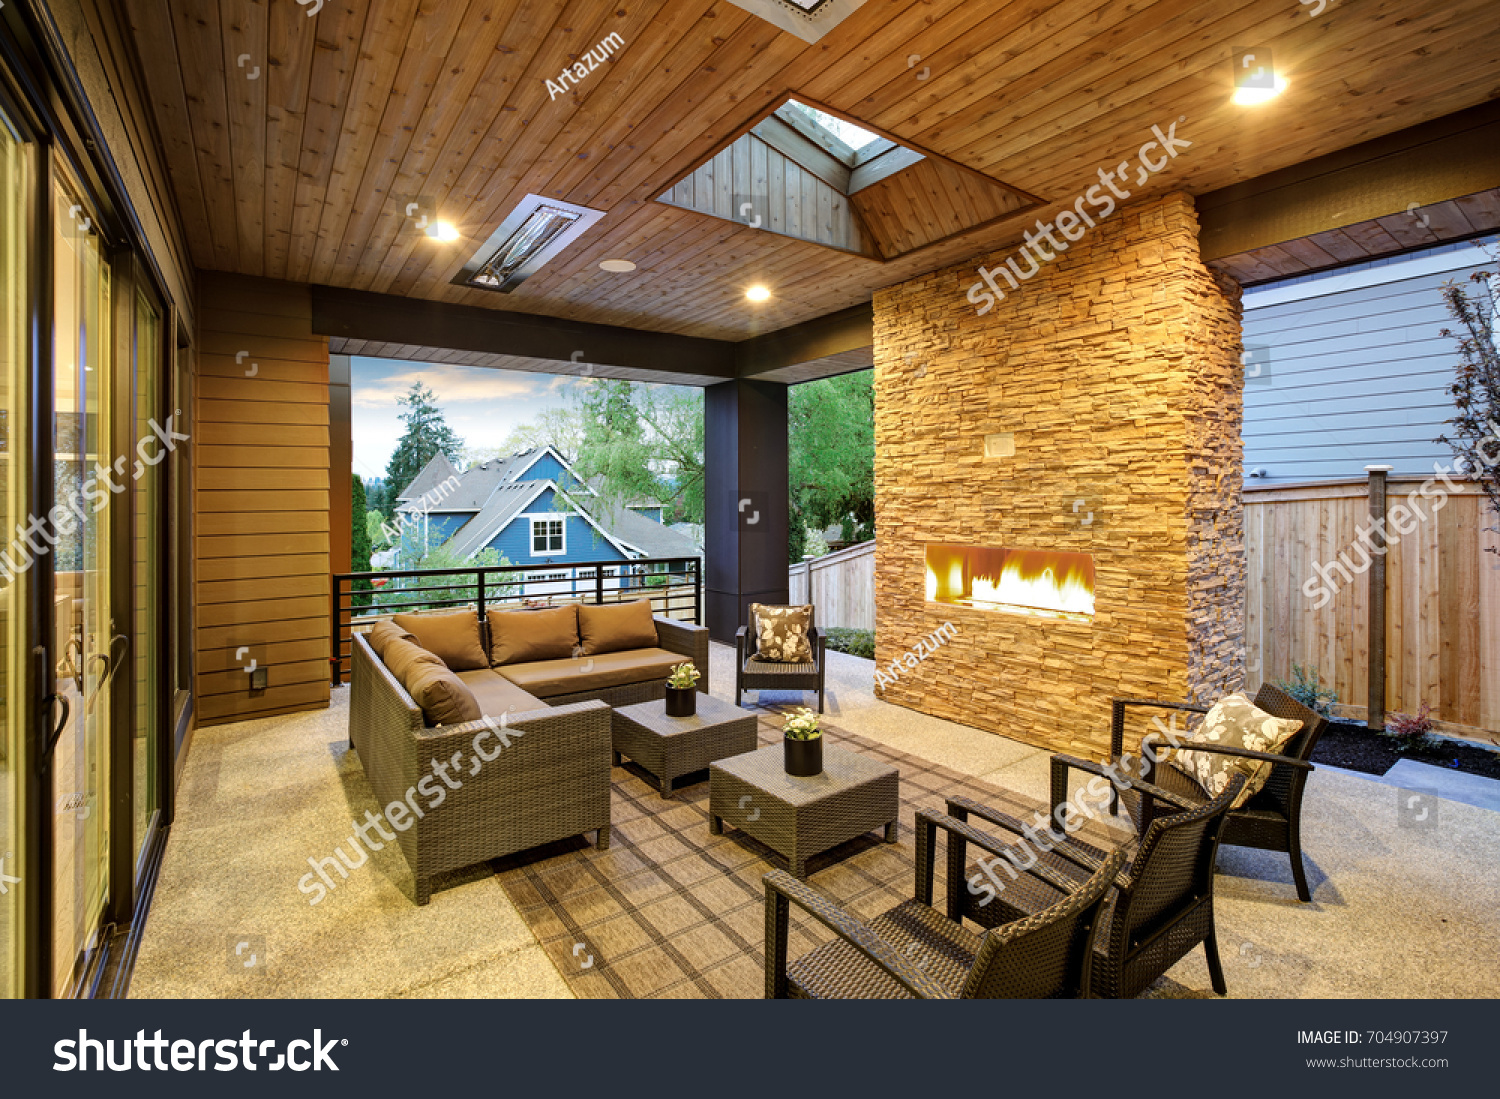 Covered Patio Designs With Fireplace. Dreamy Outdoor Covered Patio With  Stone Fireplace, A Beadboard